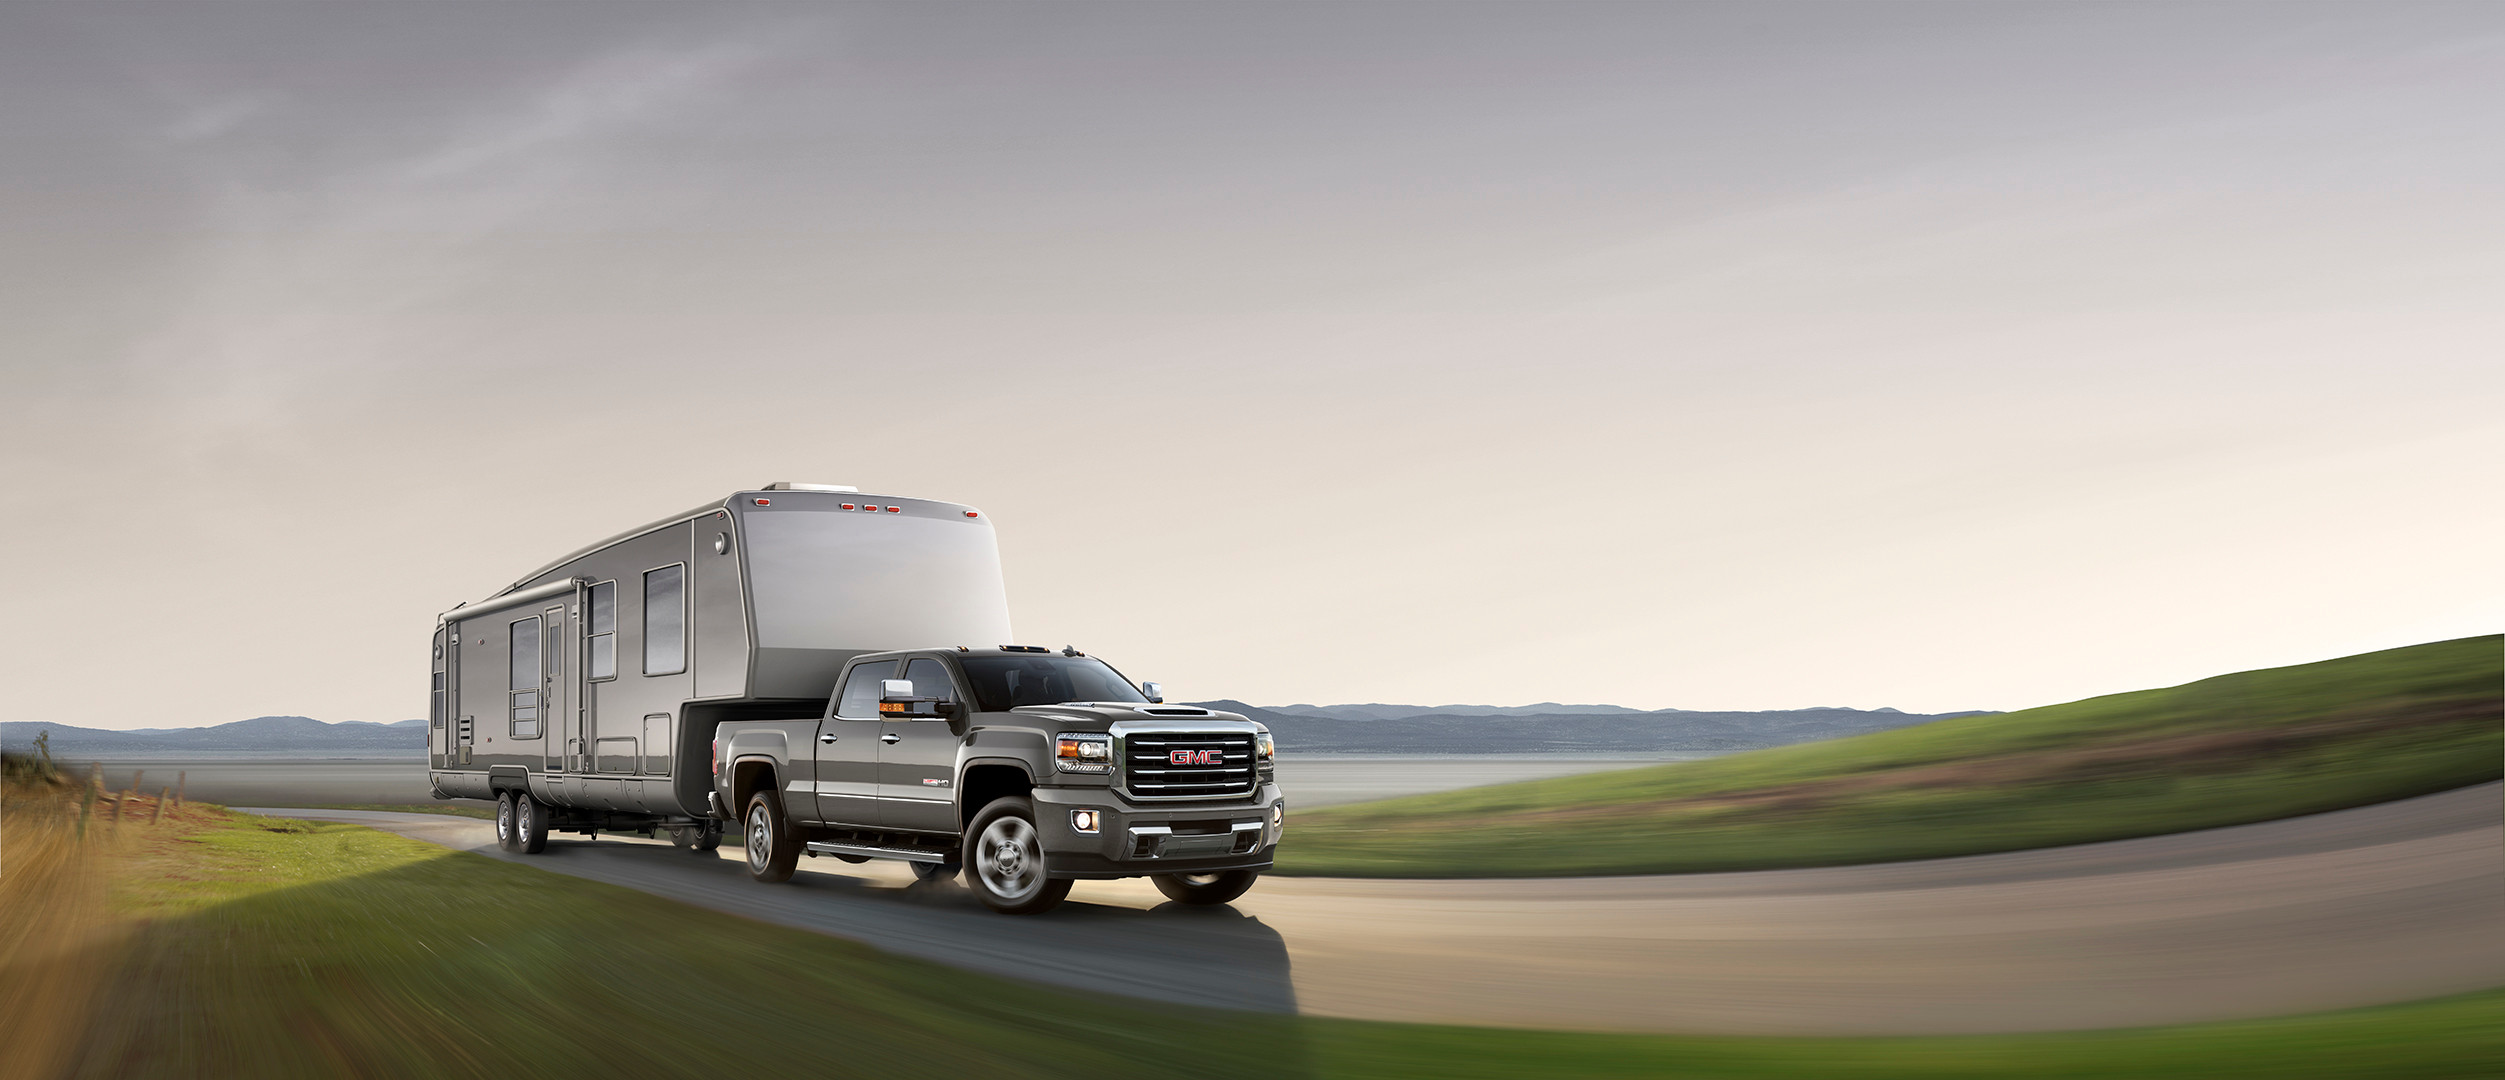 GMC Sierra: CG RV Trailer